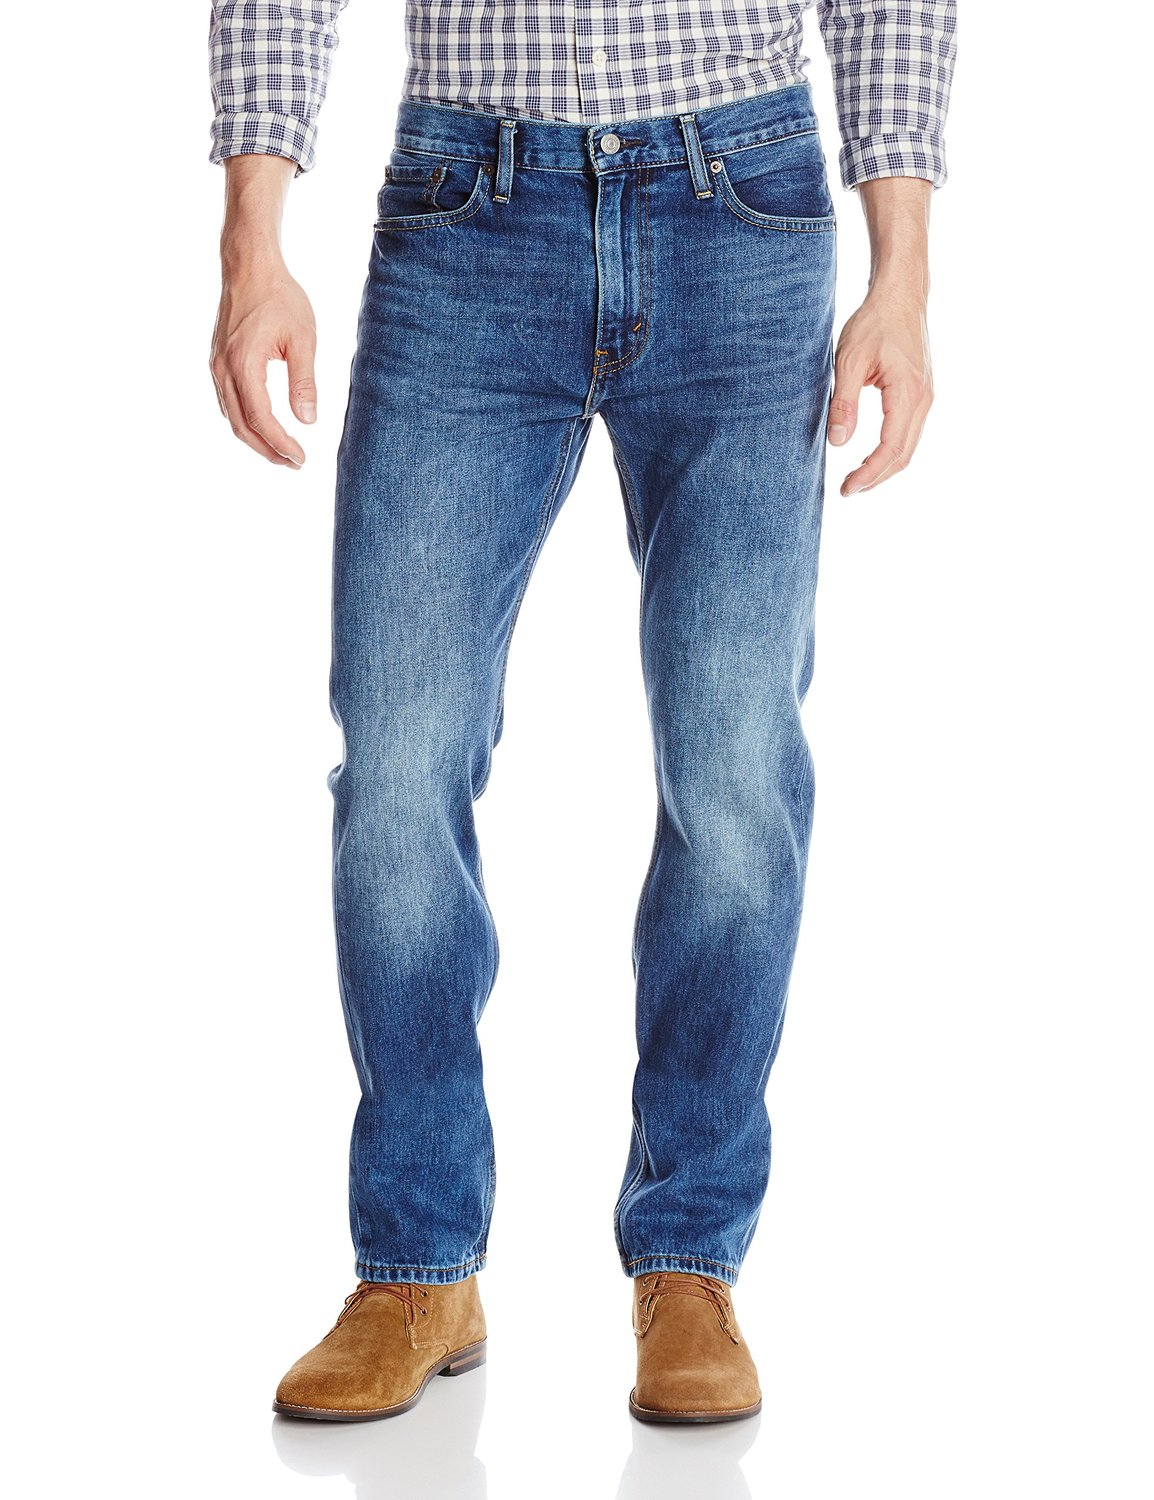 Shop mens slim fit denim, straight leg jeans & lightweight jeans at Lord & Taylor. Free shipping on any order over $